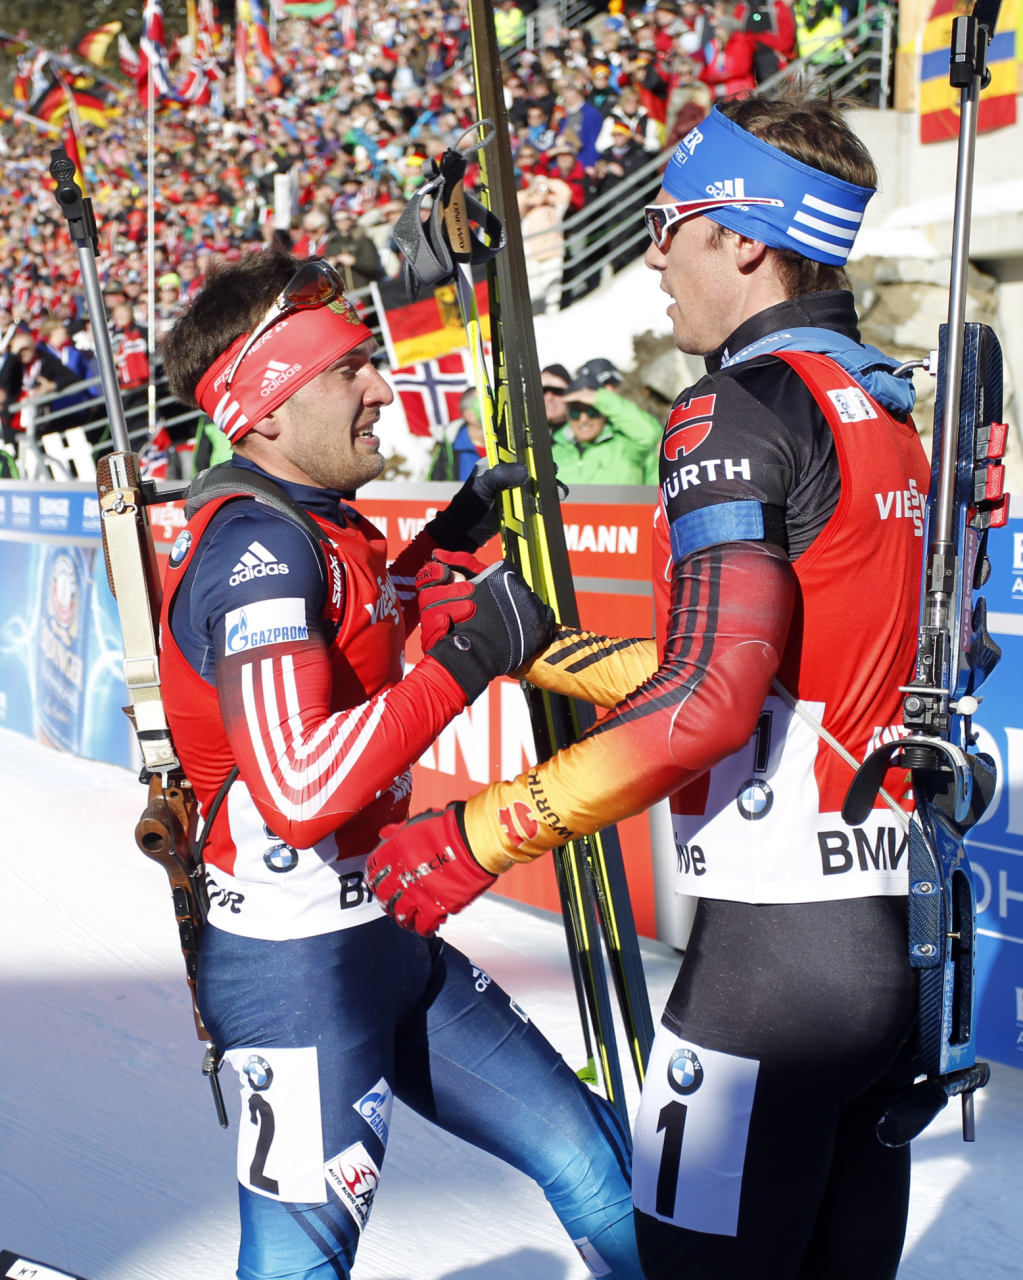 Germany's Simon Schempp, right, is congratulated by Russia фото (photo)